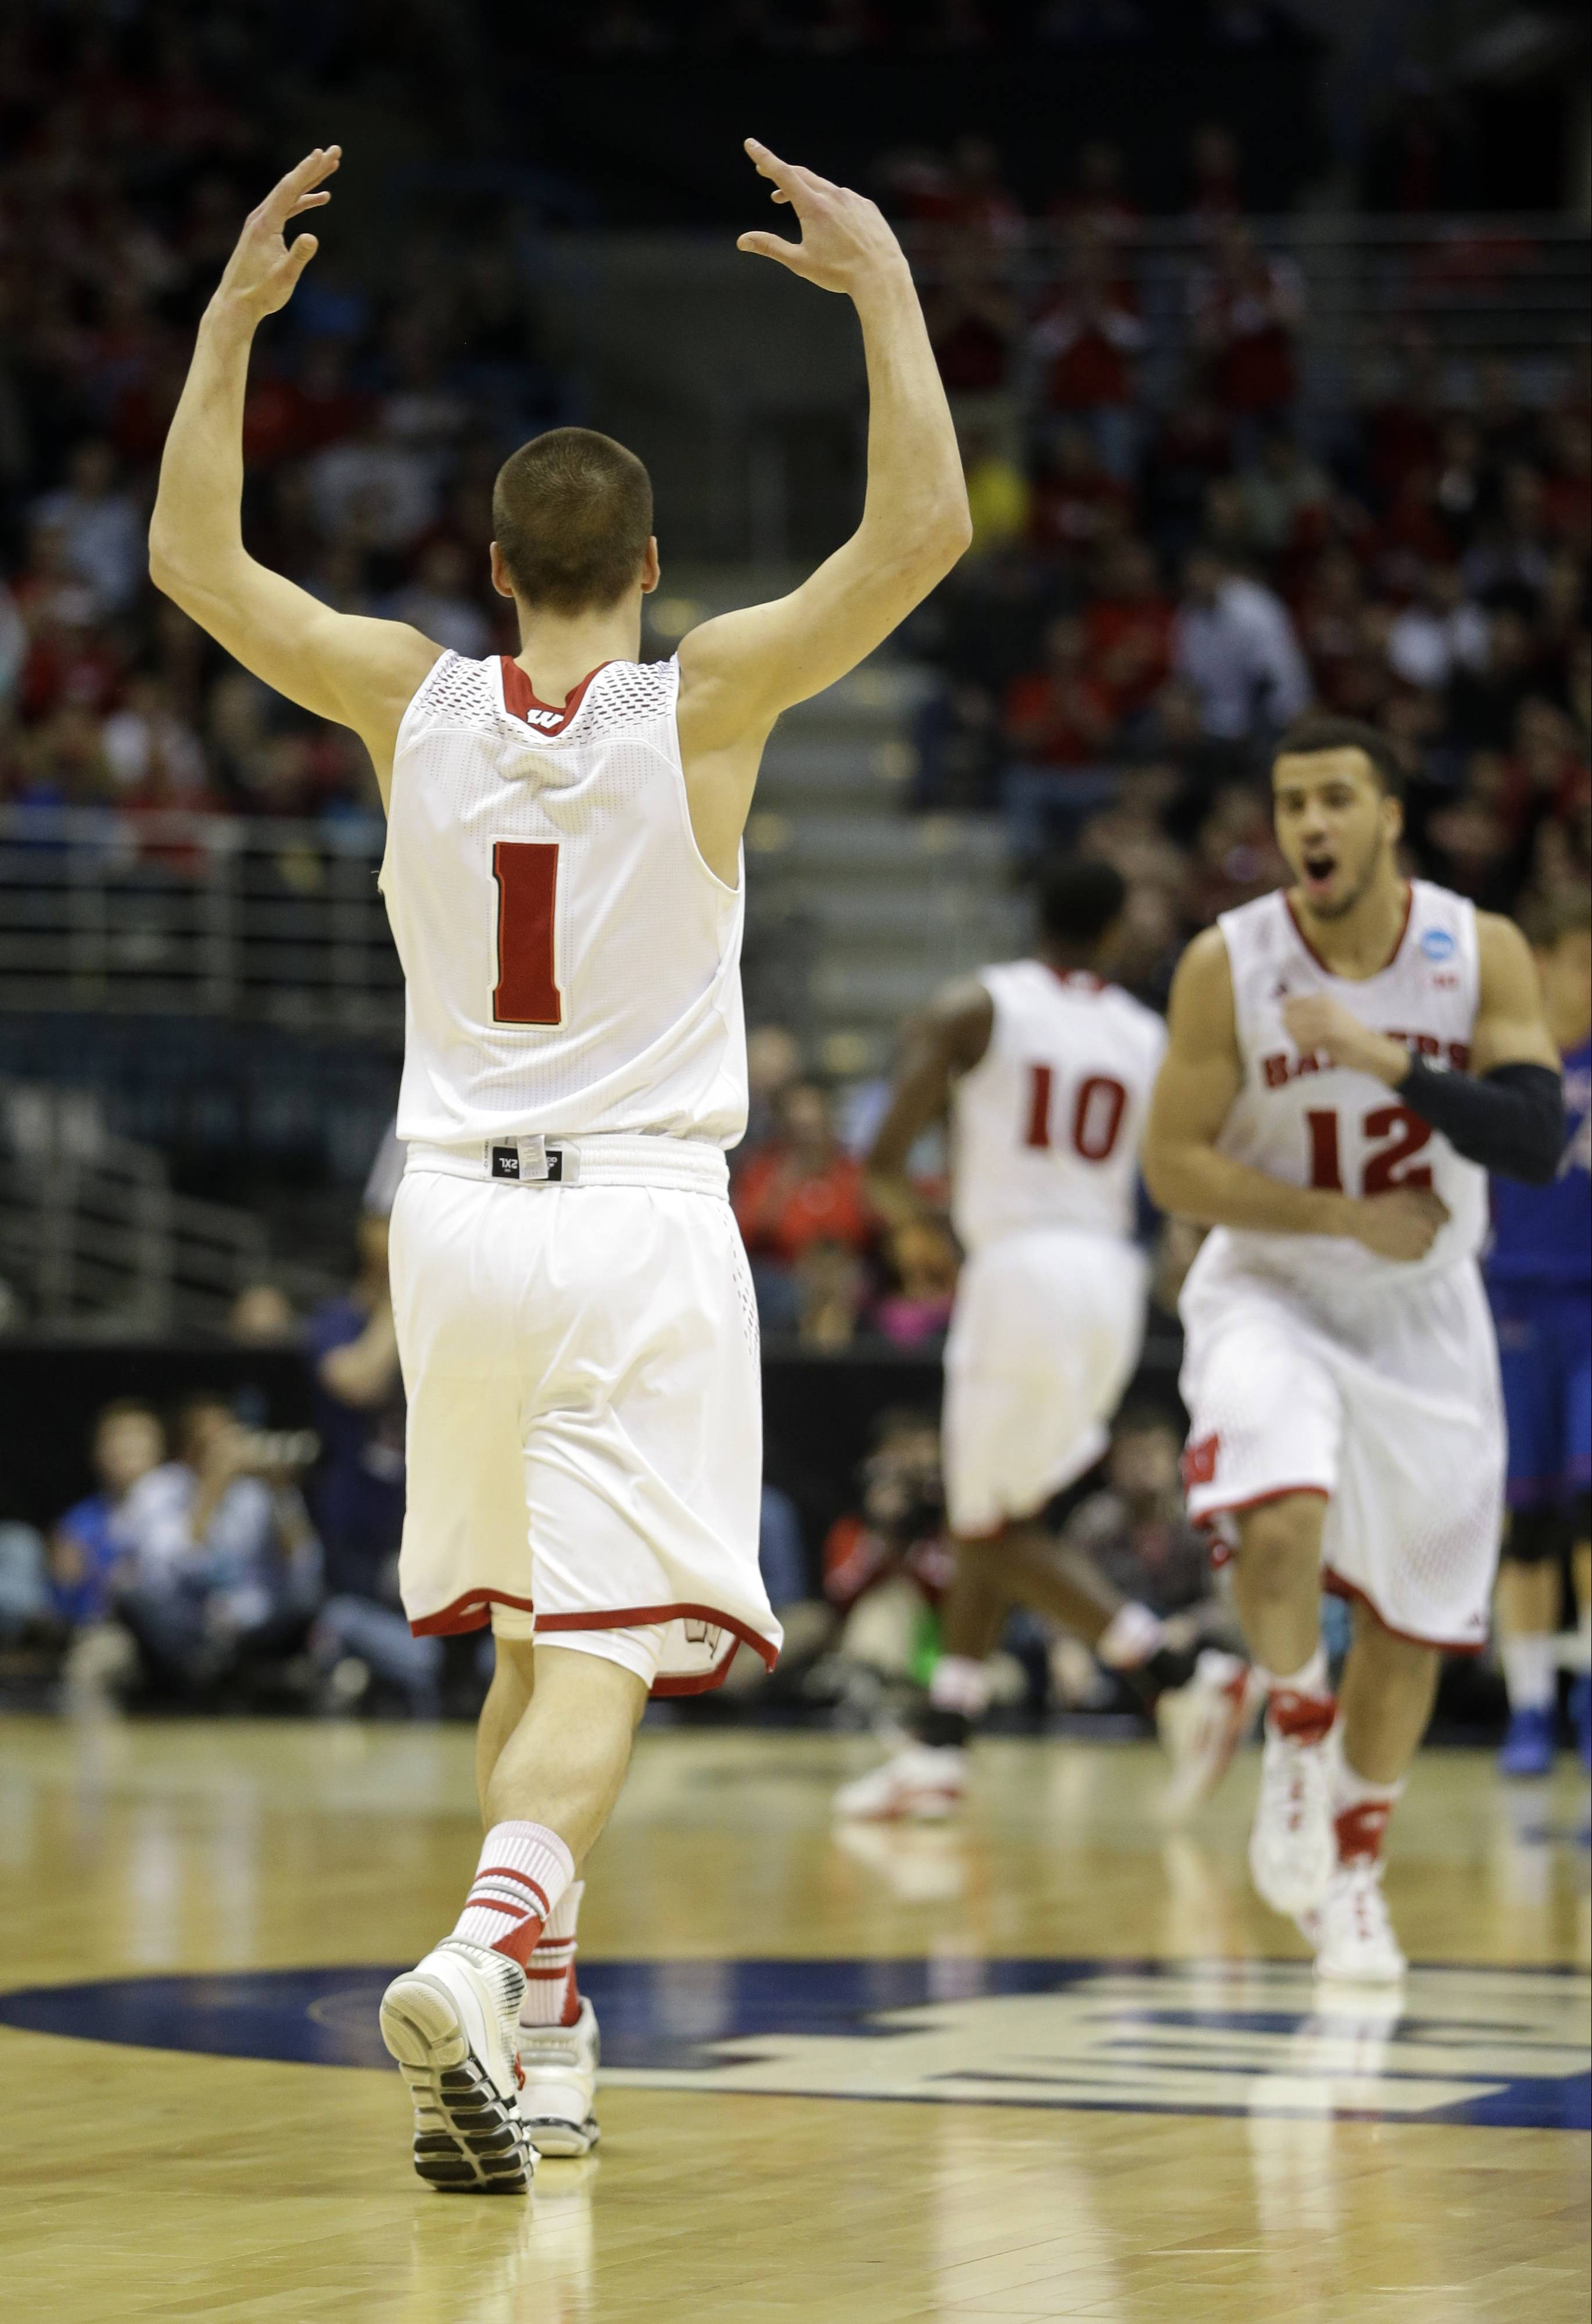 Wisconsin guard Ben Brust (1) celebrates after scoring a three pointer during the second half of a second-round game against the American in the NCAA college basketball tournament Thursday, March 20, 2014, in Milwaukee.